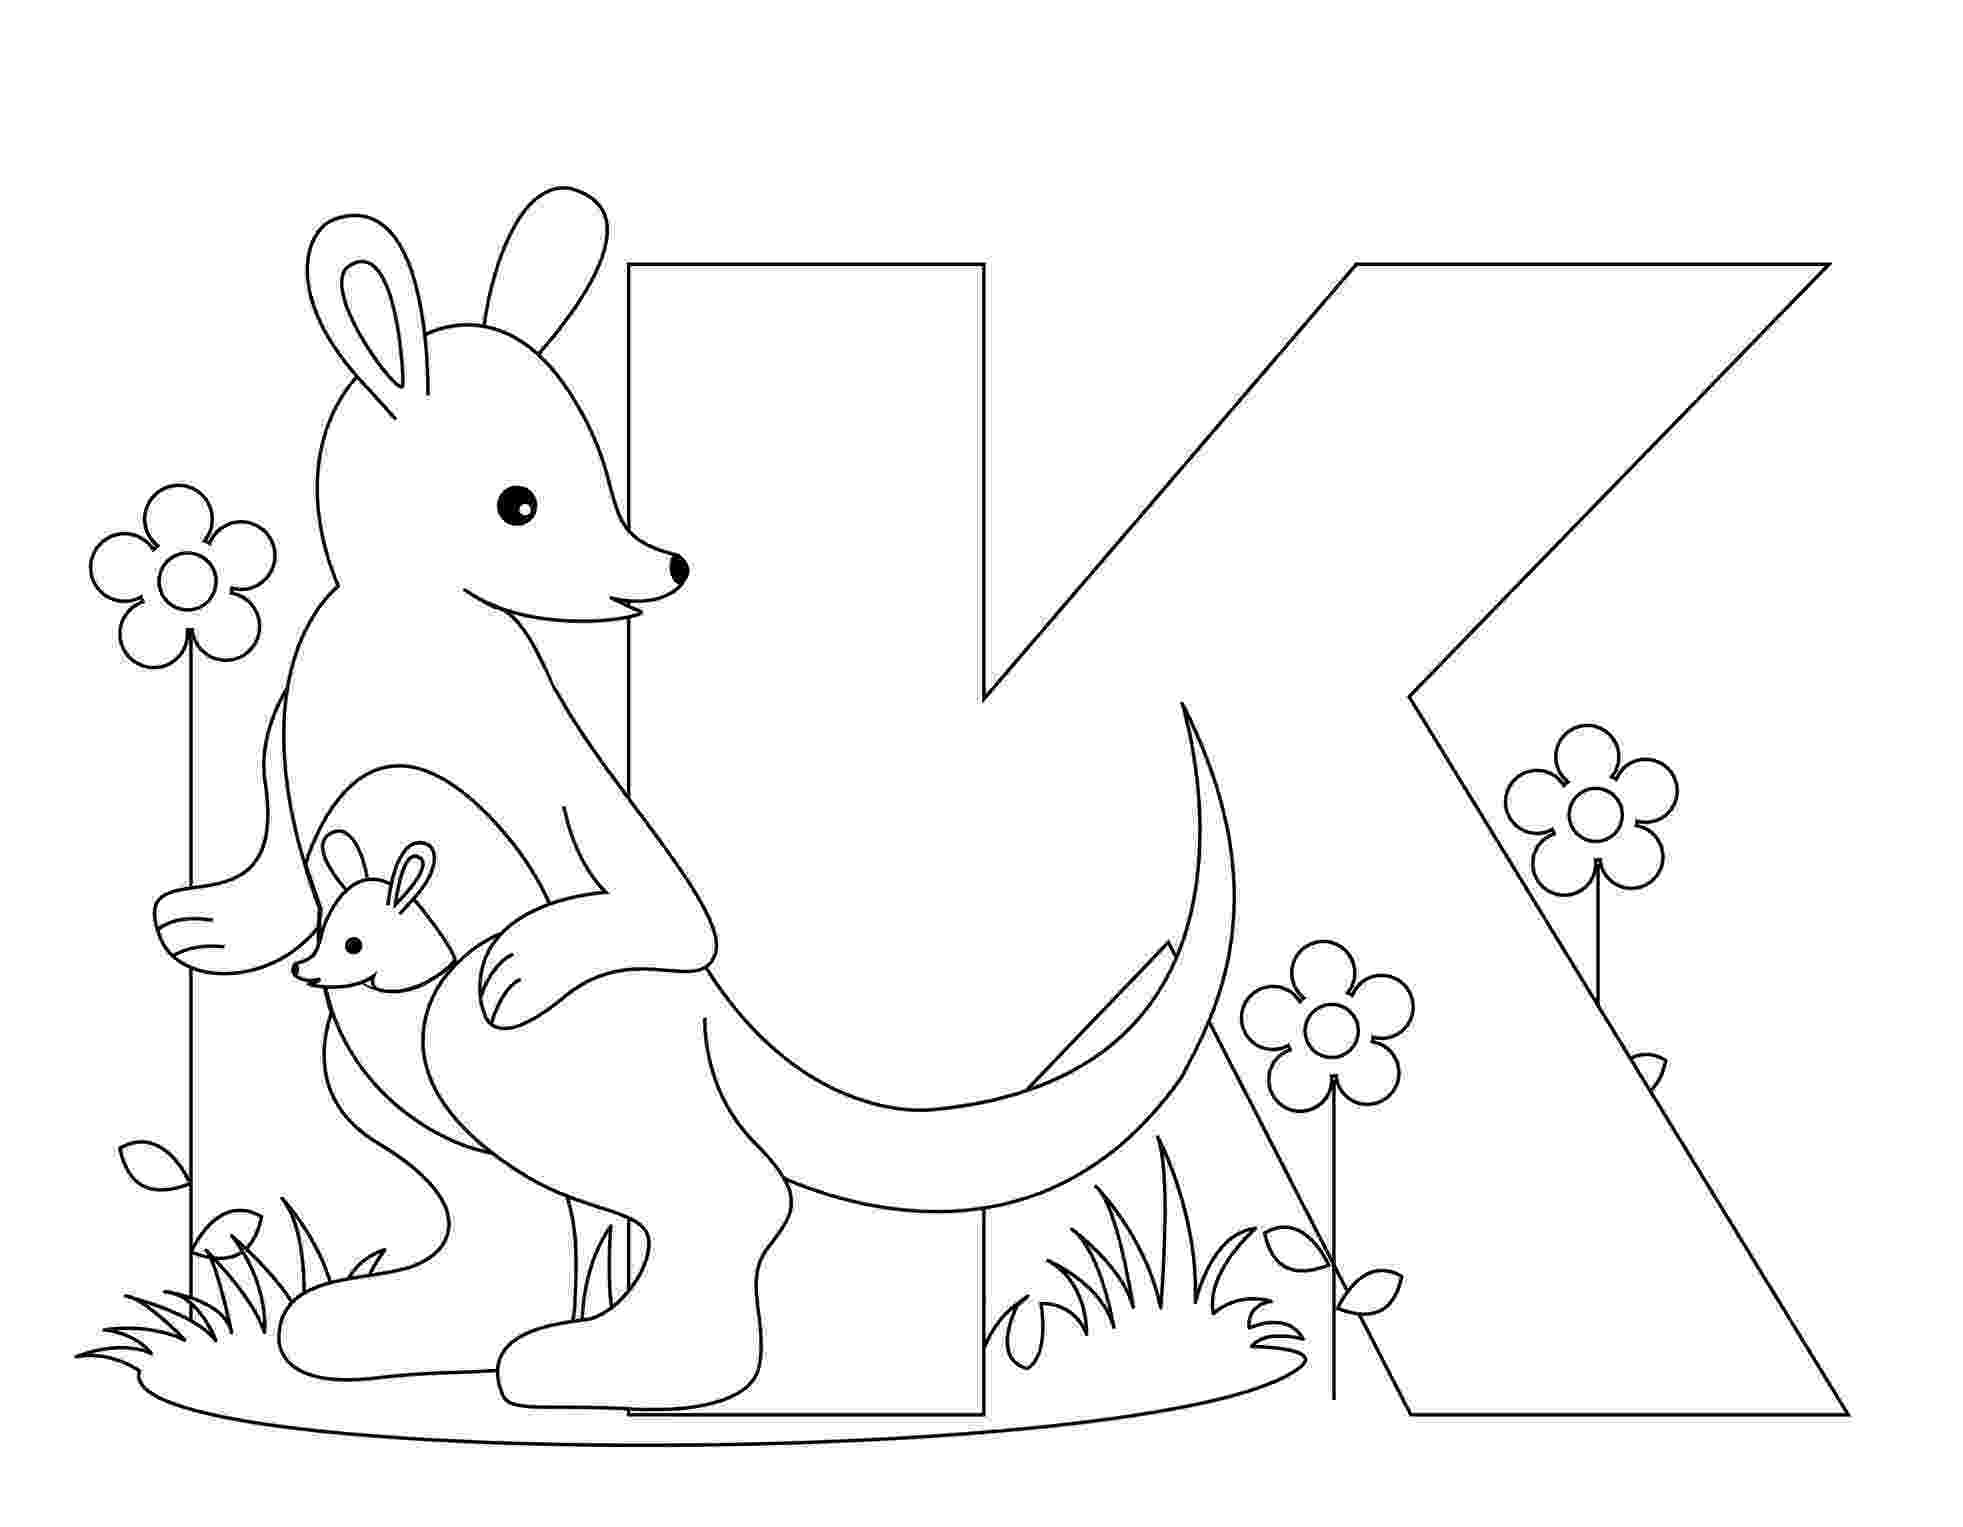 childrens colouring pages alphabet 60 alphabet flash cards to print for making learning fun alphabet pages childrens colouring